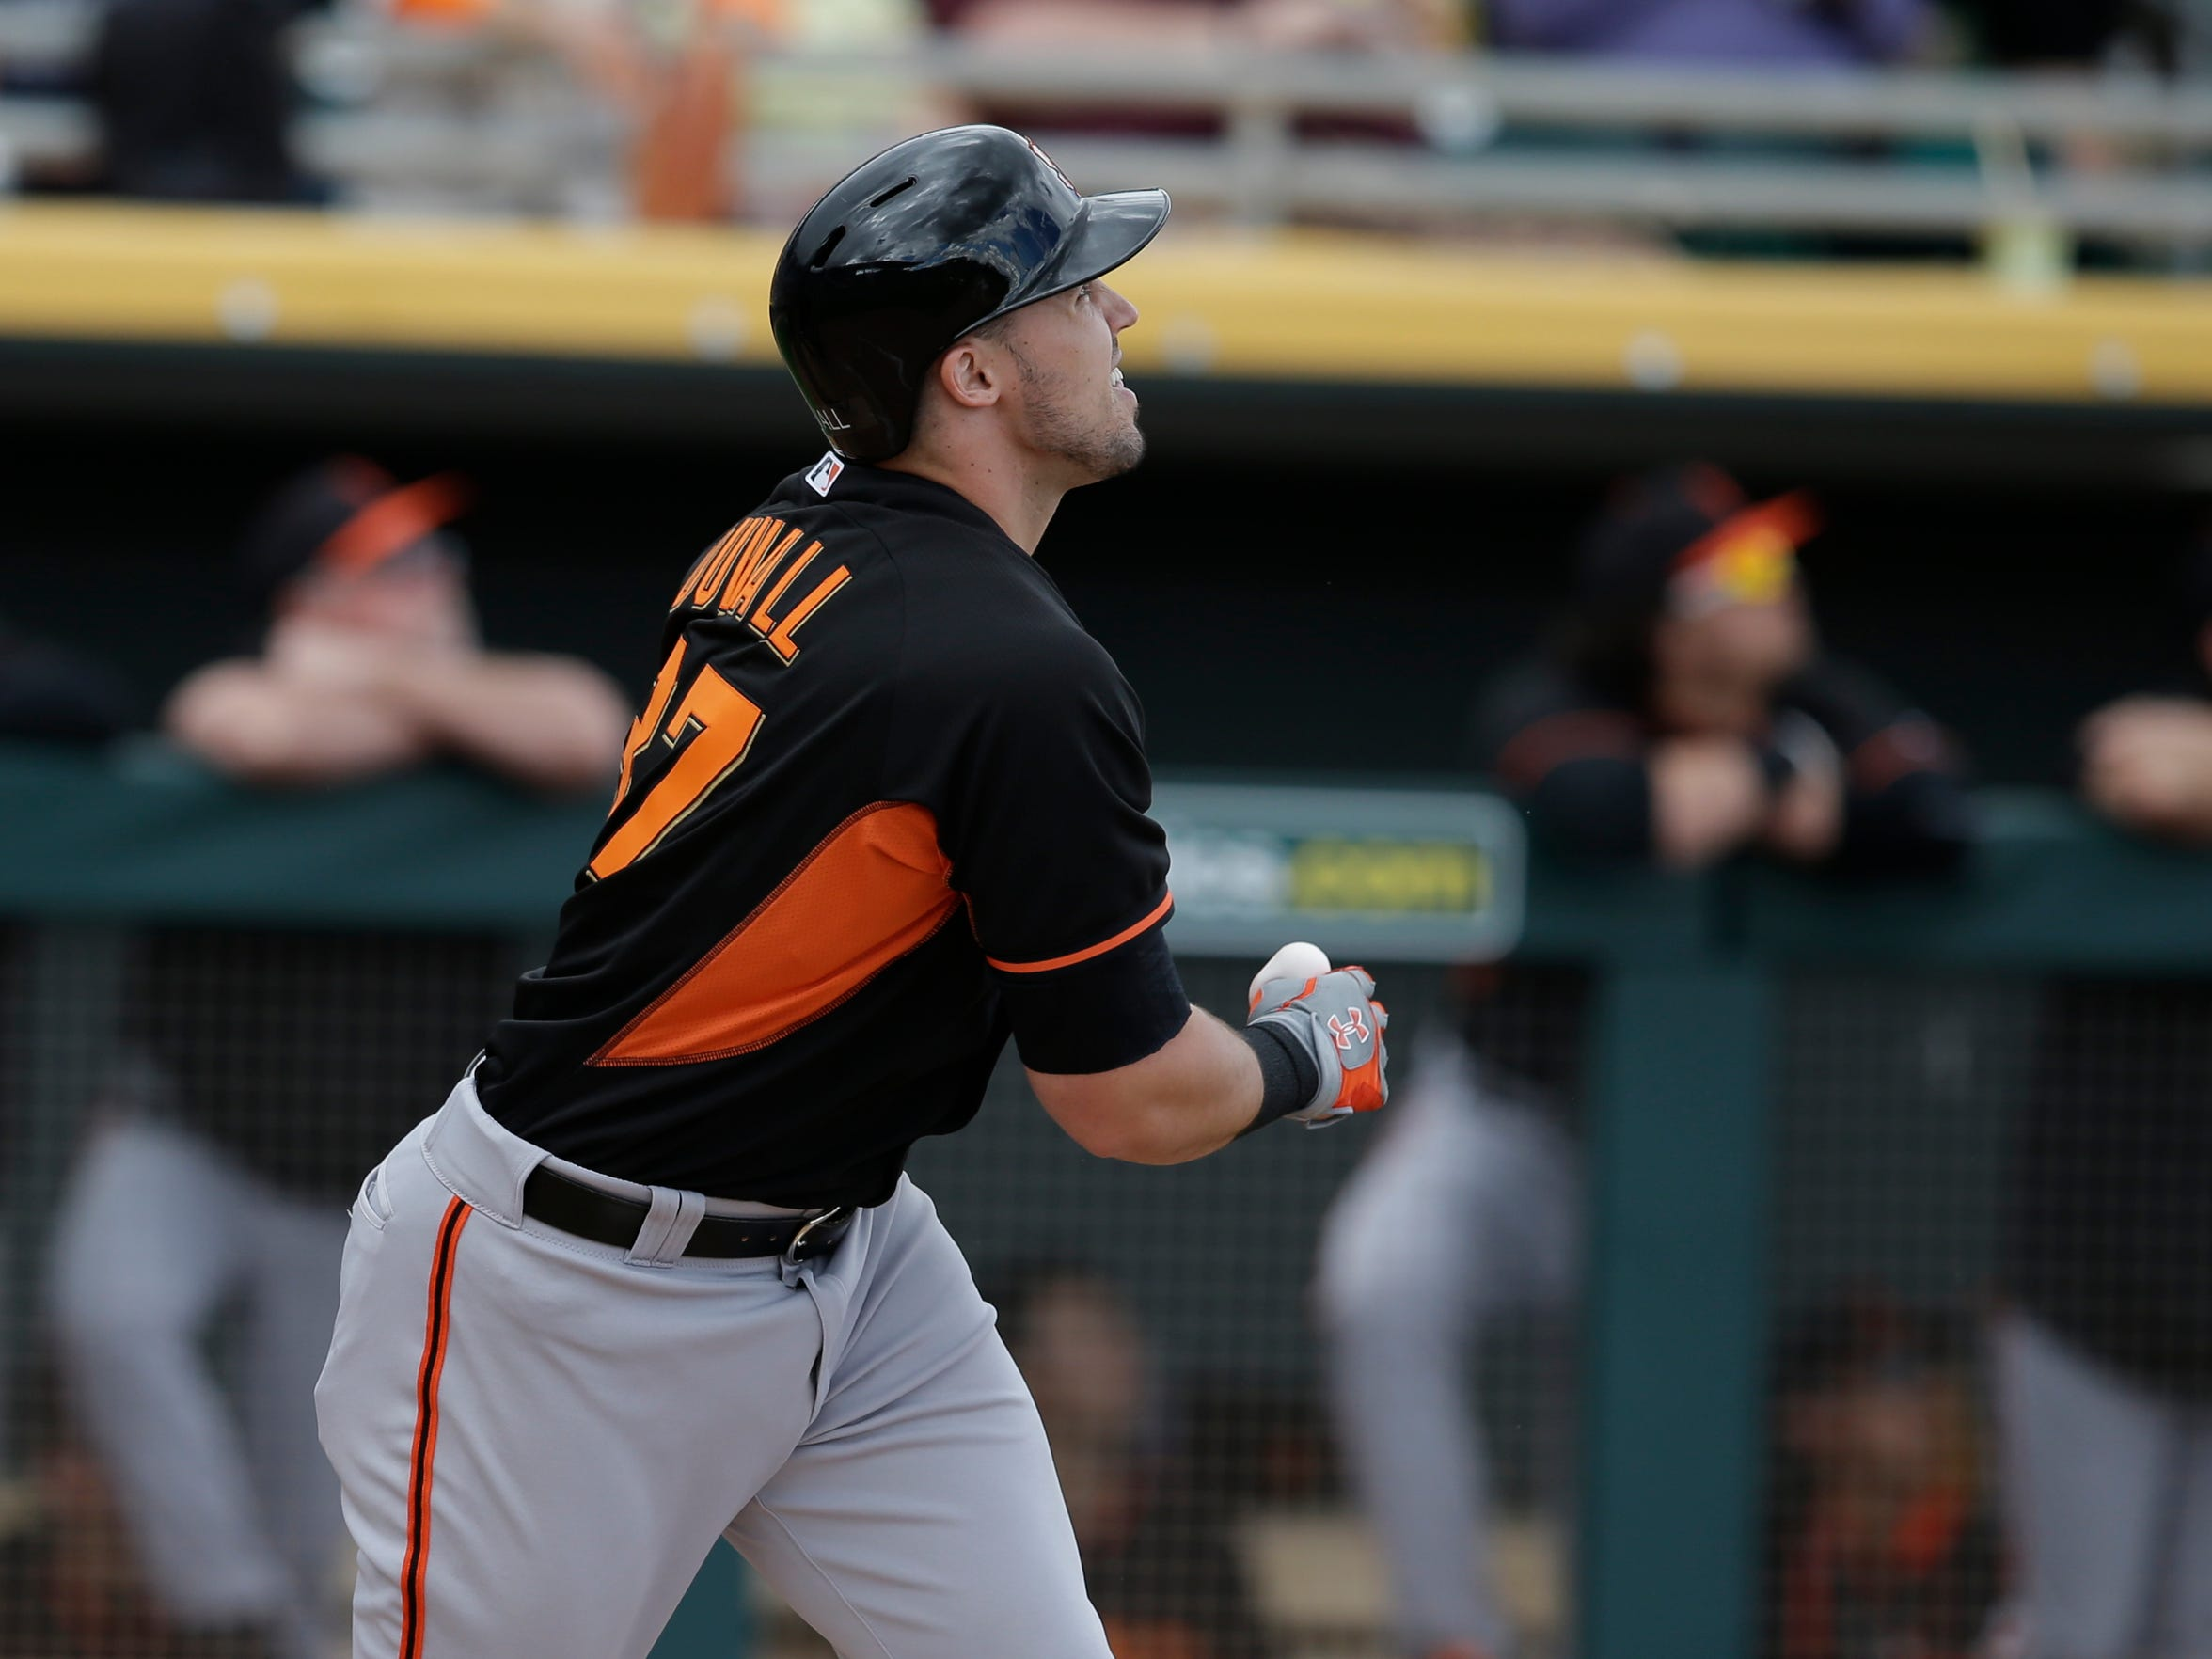 San Francisco Giants' Adam Duvall (37) in action during a spring training baseball game against the Oakland Athletics Tuesday, March 3, 2015, in Mesa, Ariz. (AP Photo/Darron Cummings)